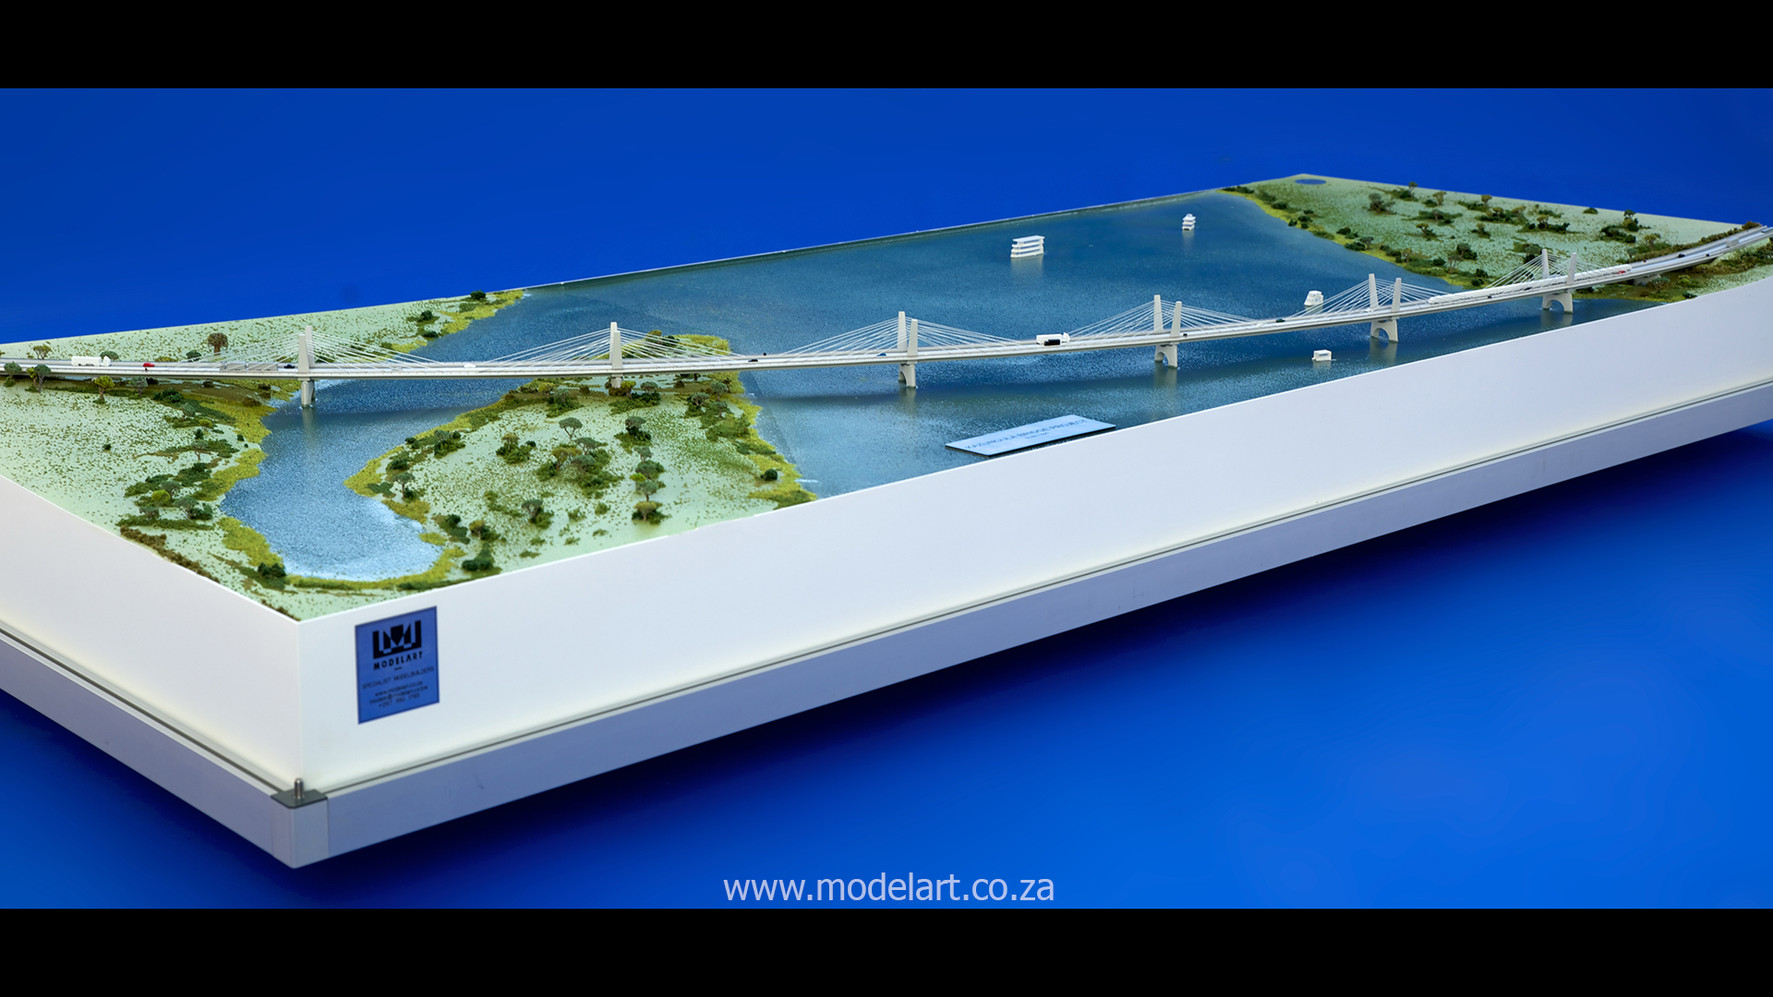 Architectural-Scale-Model-Engineering-Kazangula Bridge-4